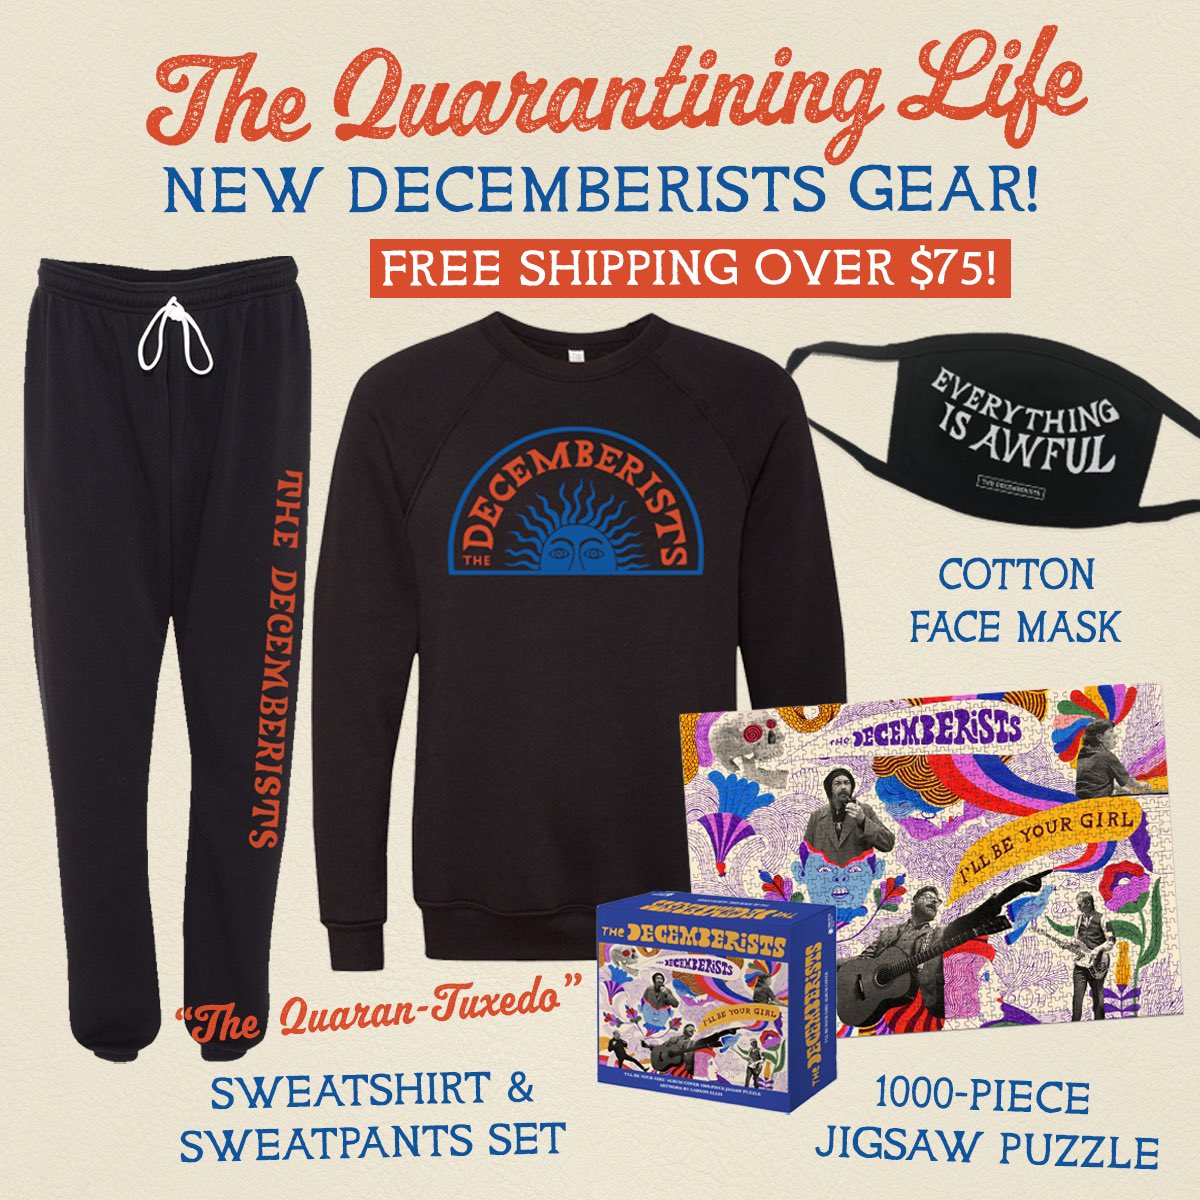 ICYMI, we've got some new merch items up for pre-order in the Decemberists shop. All orders $75+ ship FREE. Browse now at https://t.co/tQXvZF7RoB https://t.co/zC5HKFQXnz